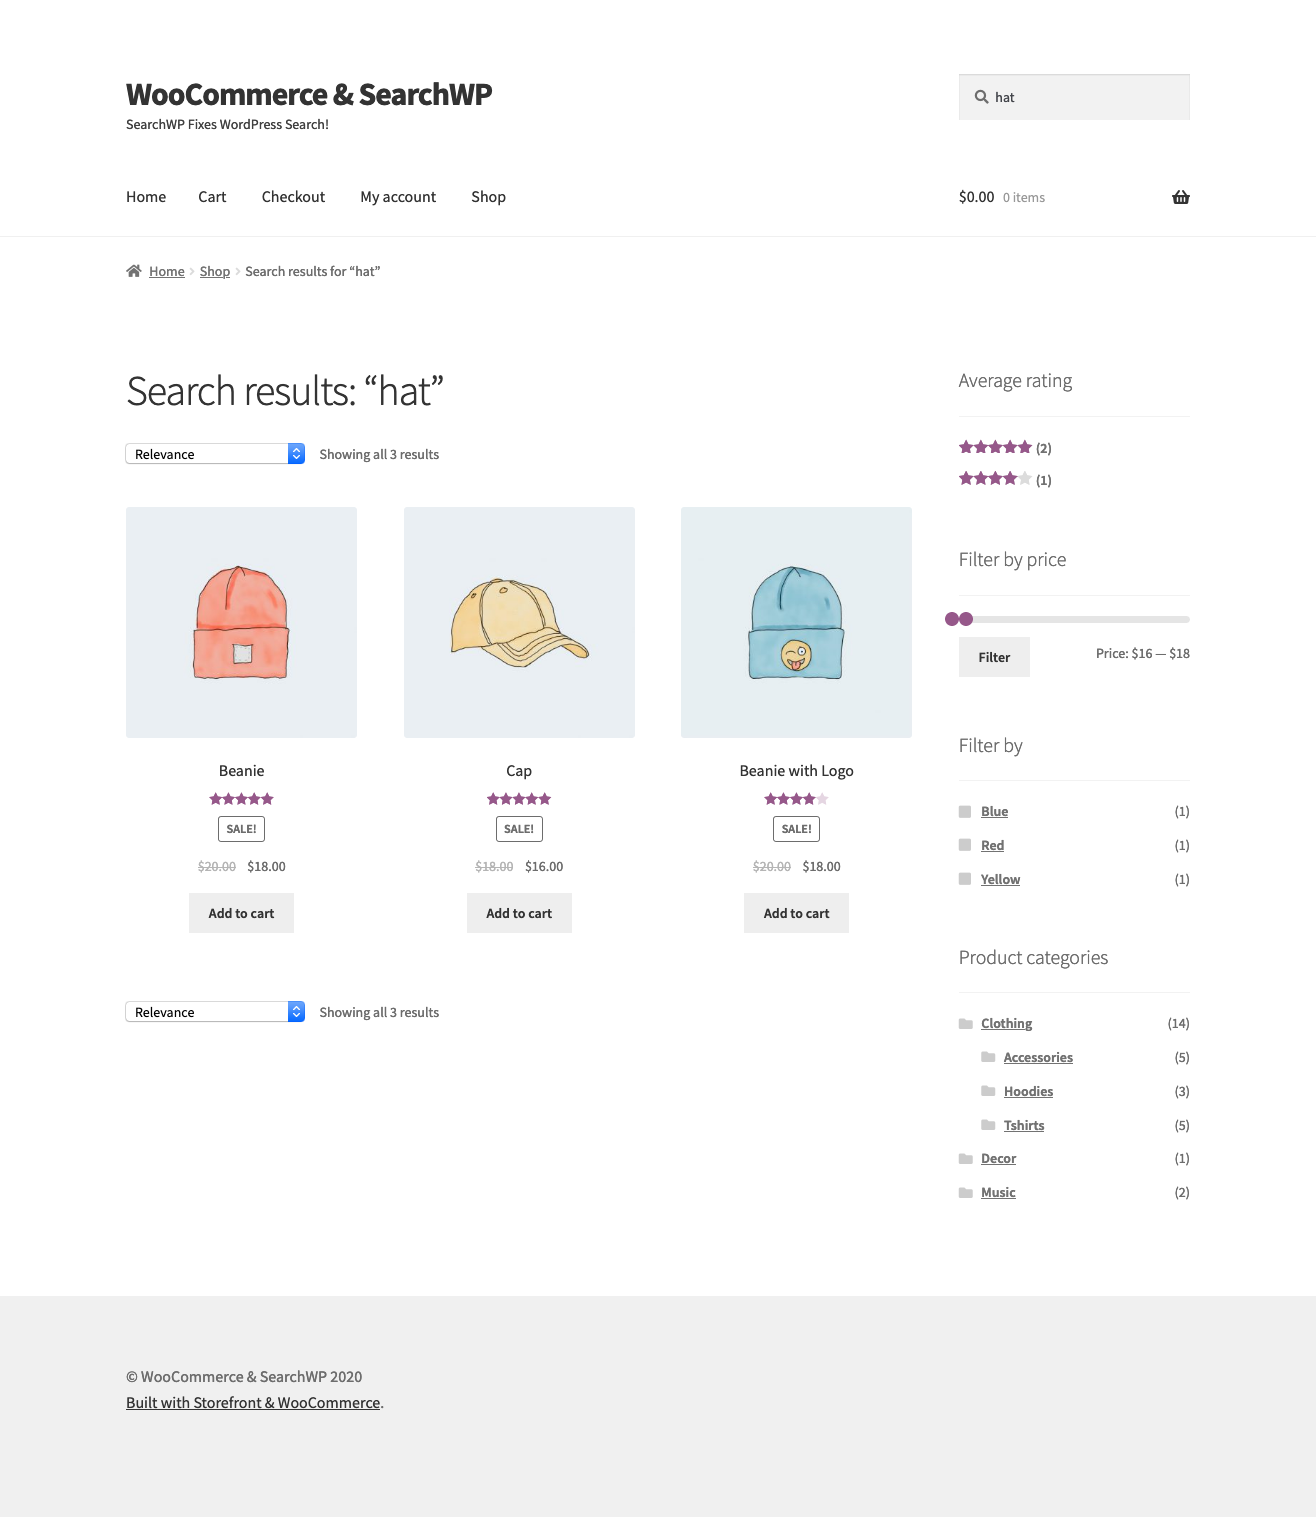 Screenshot of SearchWP and WooCommerce finding results